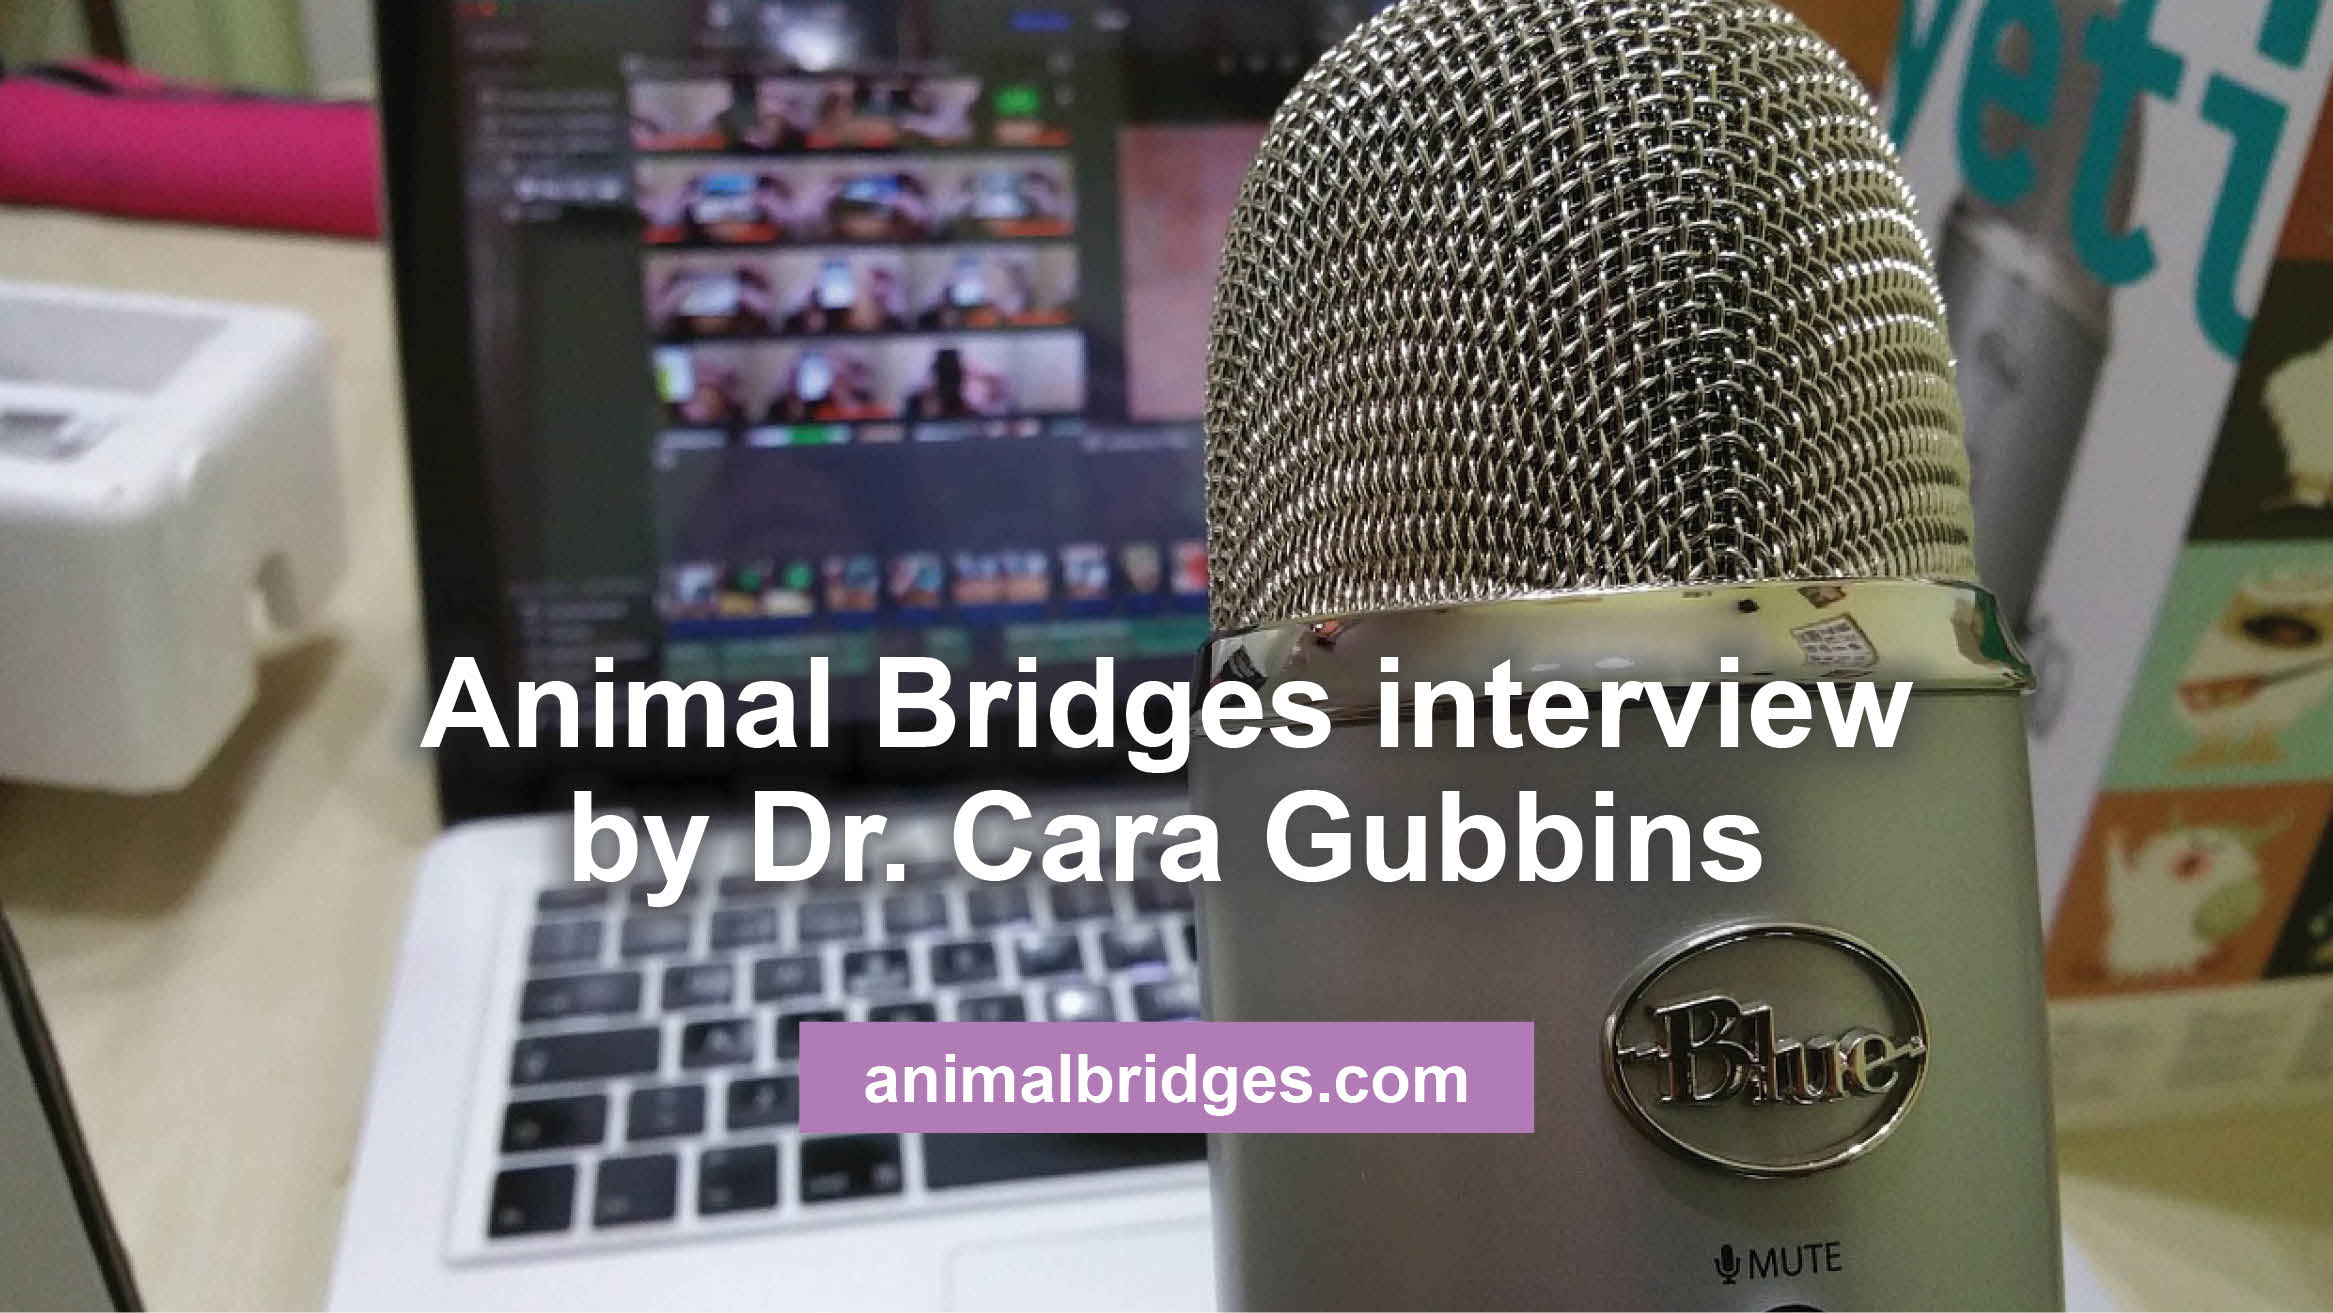 Animal Bridges interview by Dr. Cara Gubbins on April 6, 2016